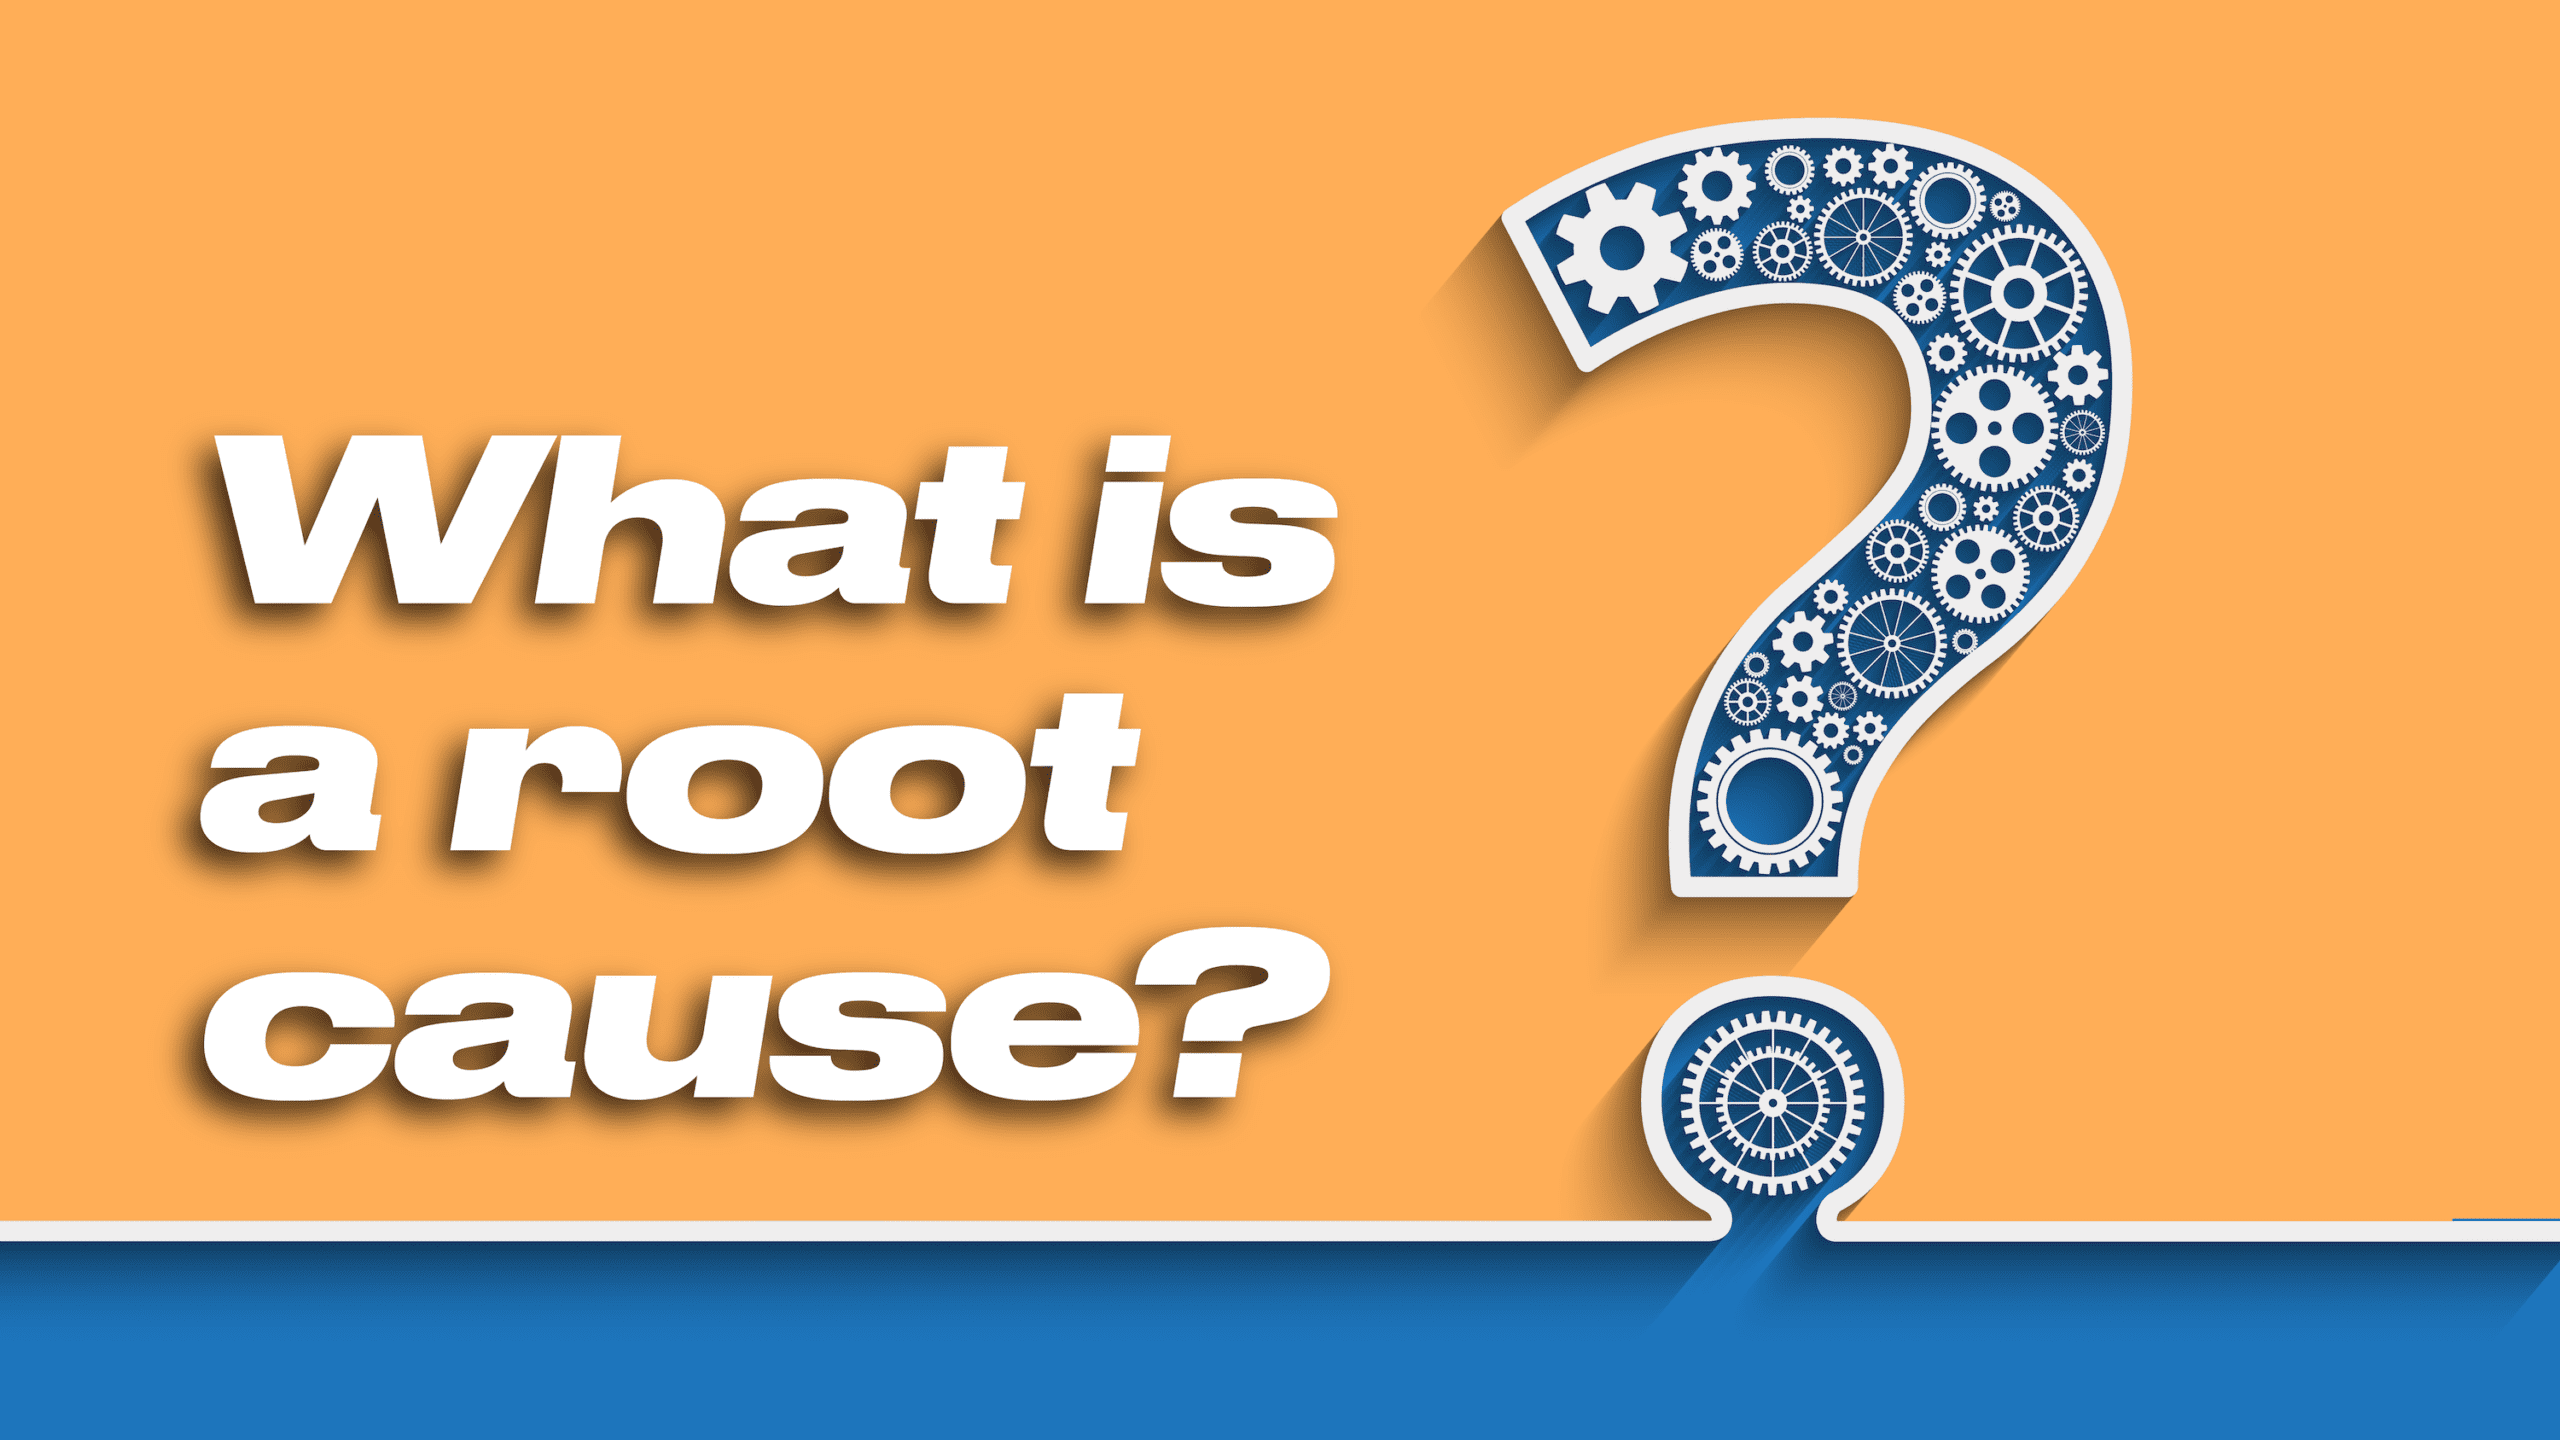 What is a root cause and why do we need to find it?